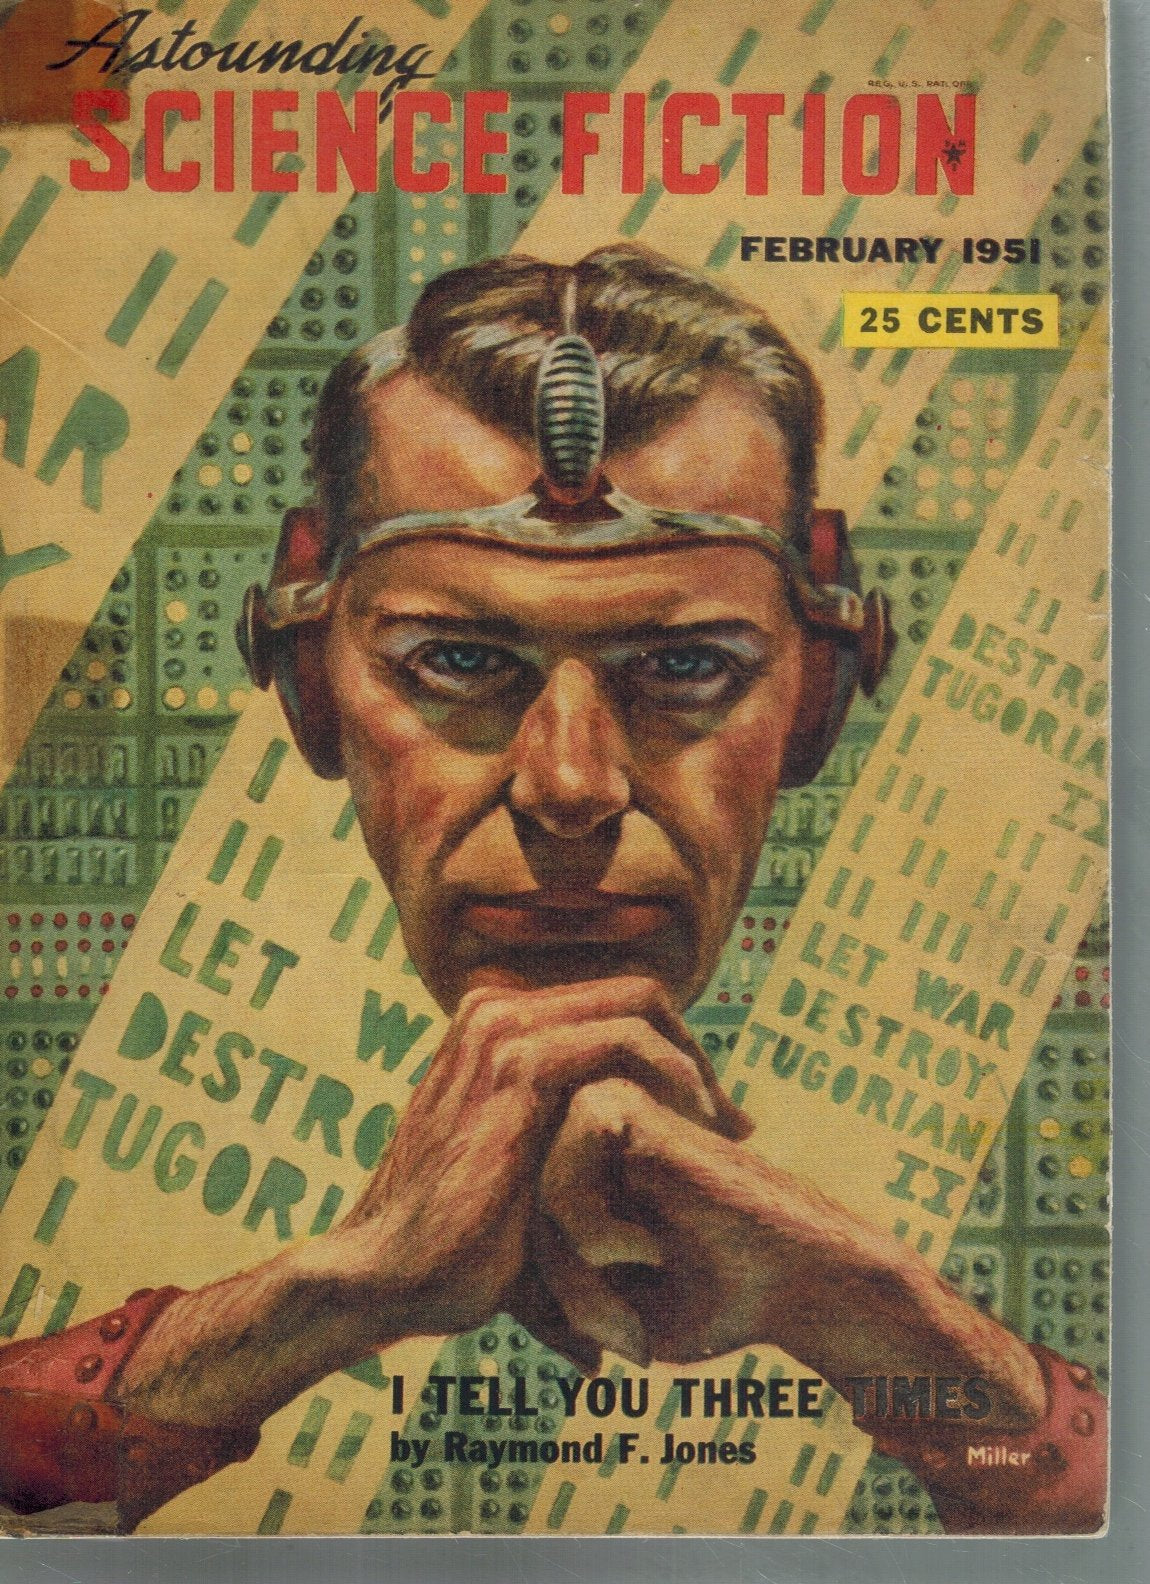 ASTOUNDING SCIENCE FICTION. FEBRUARY 1951, 'I TELL YOU THREE TIMES' BY  RAYMOND F. JONES  by Astounding Science Fiction